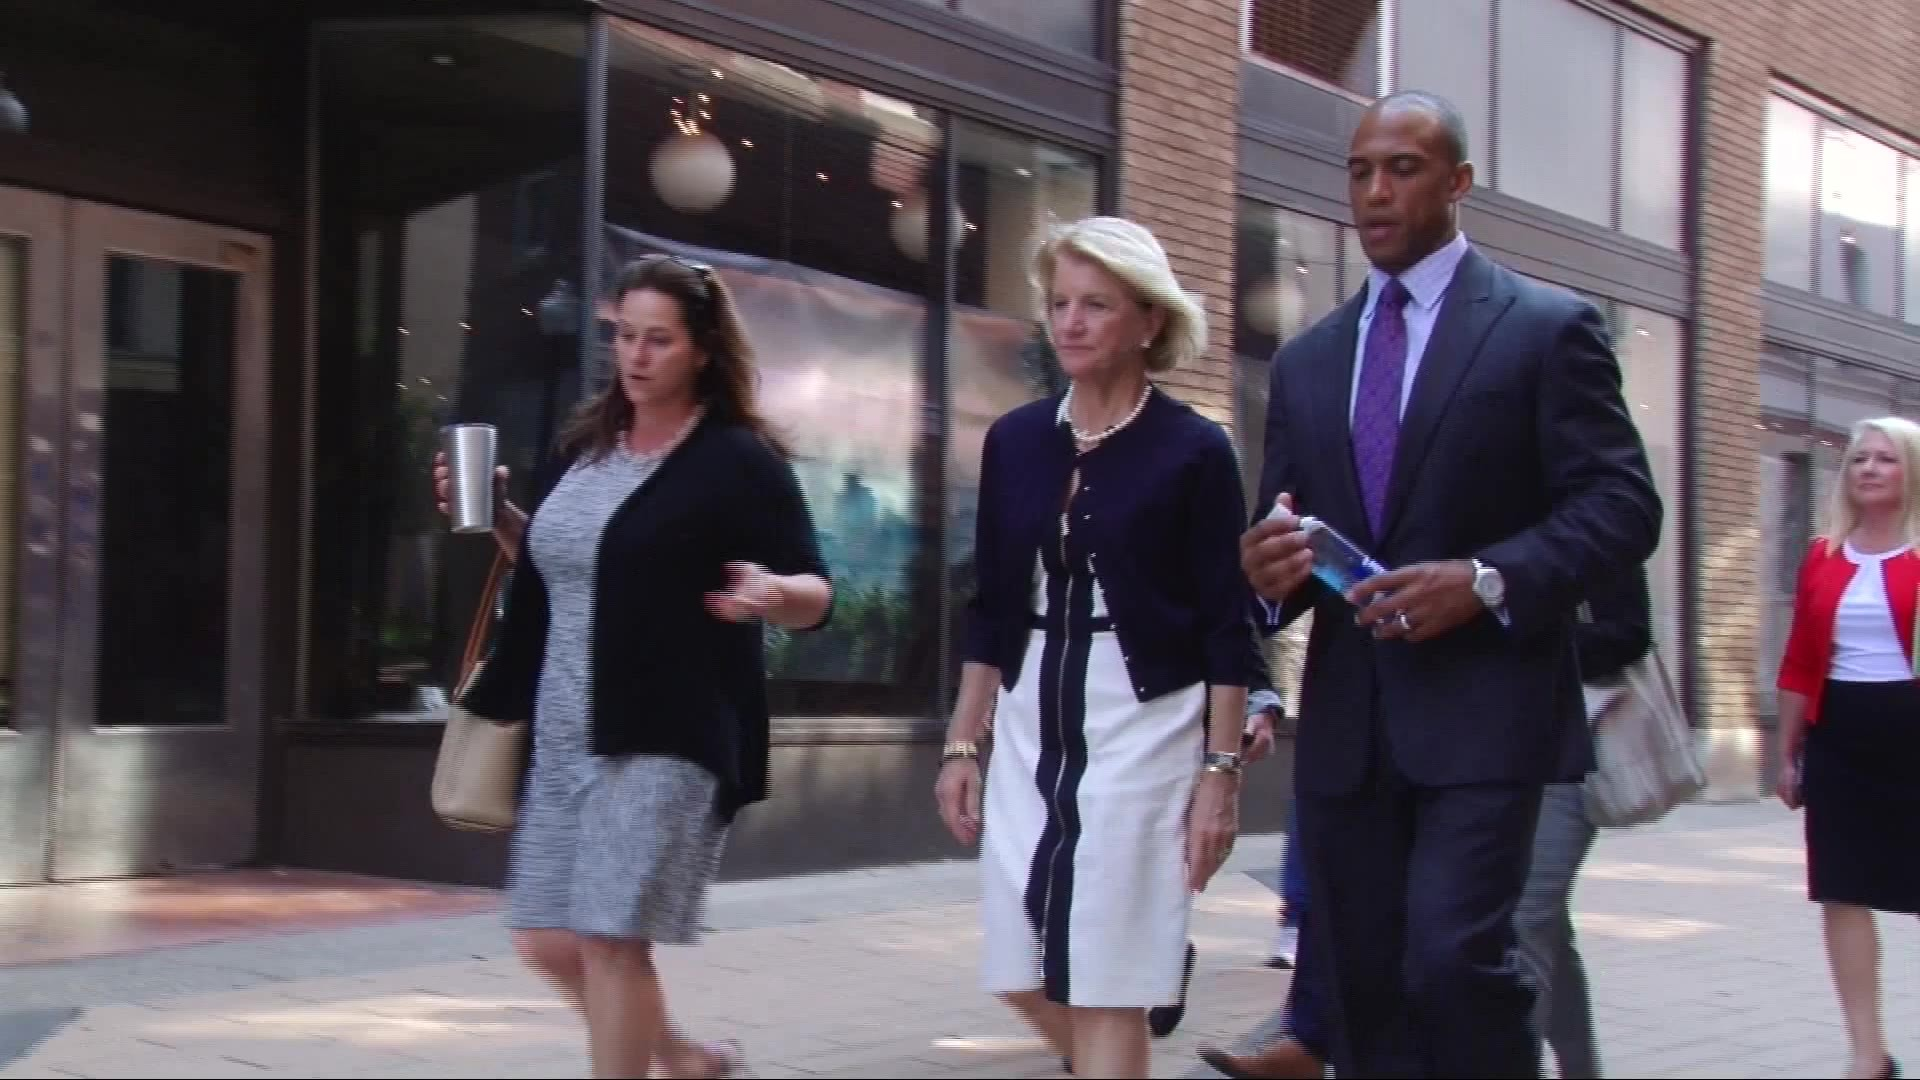 White House staff join Capito in local walk tour